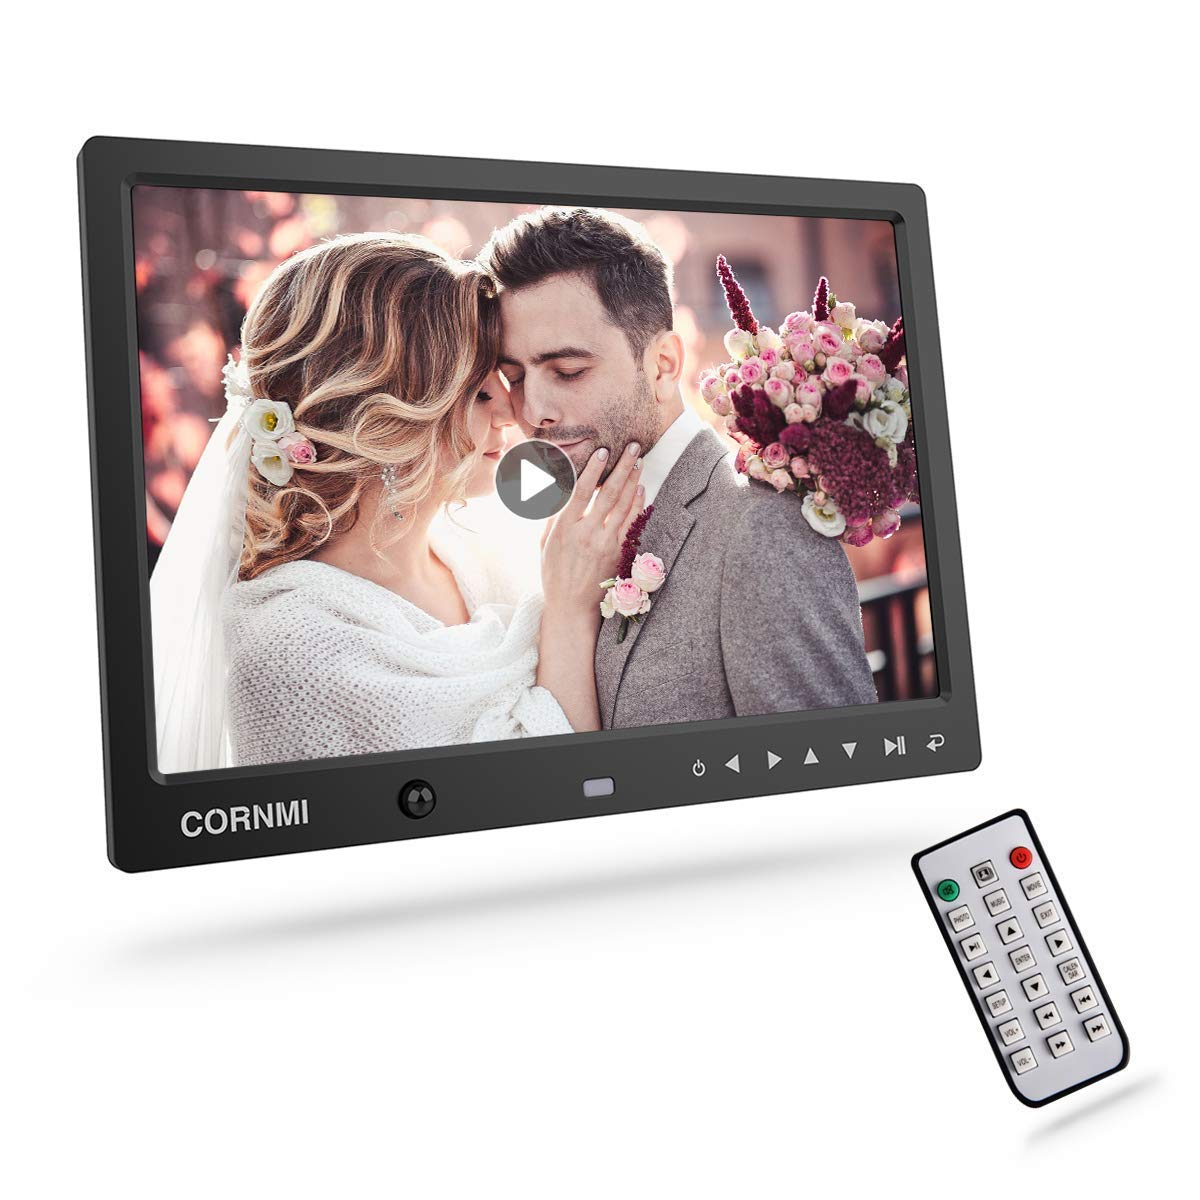 Digital Photo Frame, Cornmi Digital Picture Frame Music HD Body Motion Sensor Auto Rotation Alarm Calendar Video Player with Remote Control for Wedding Commemoration Newoer